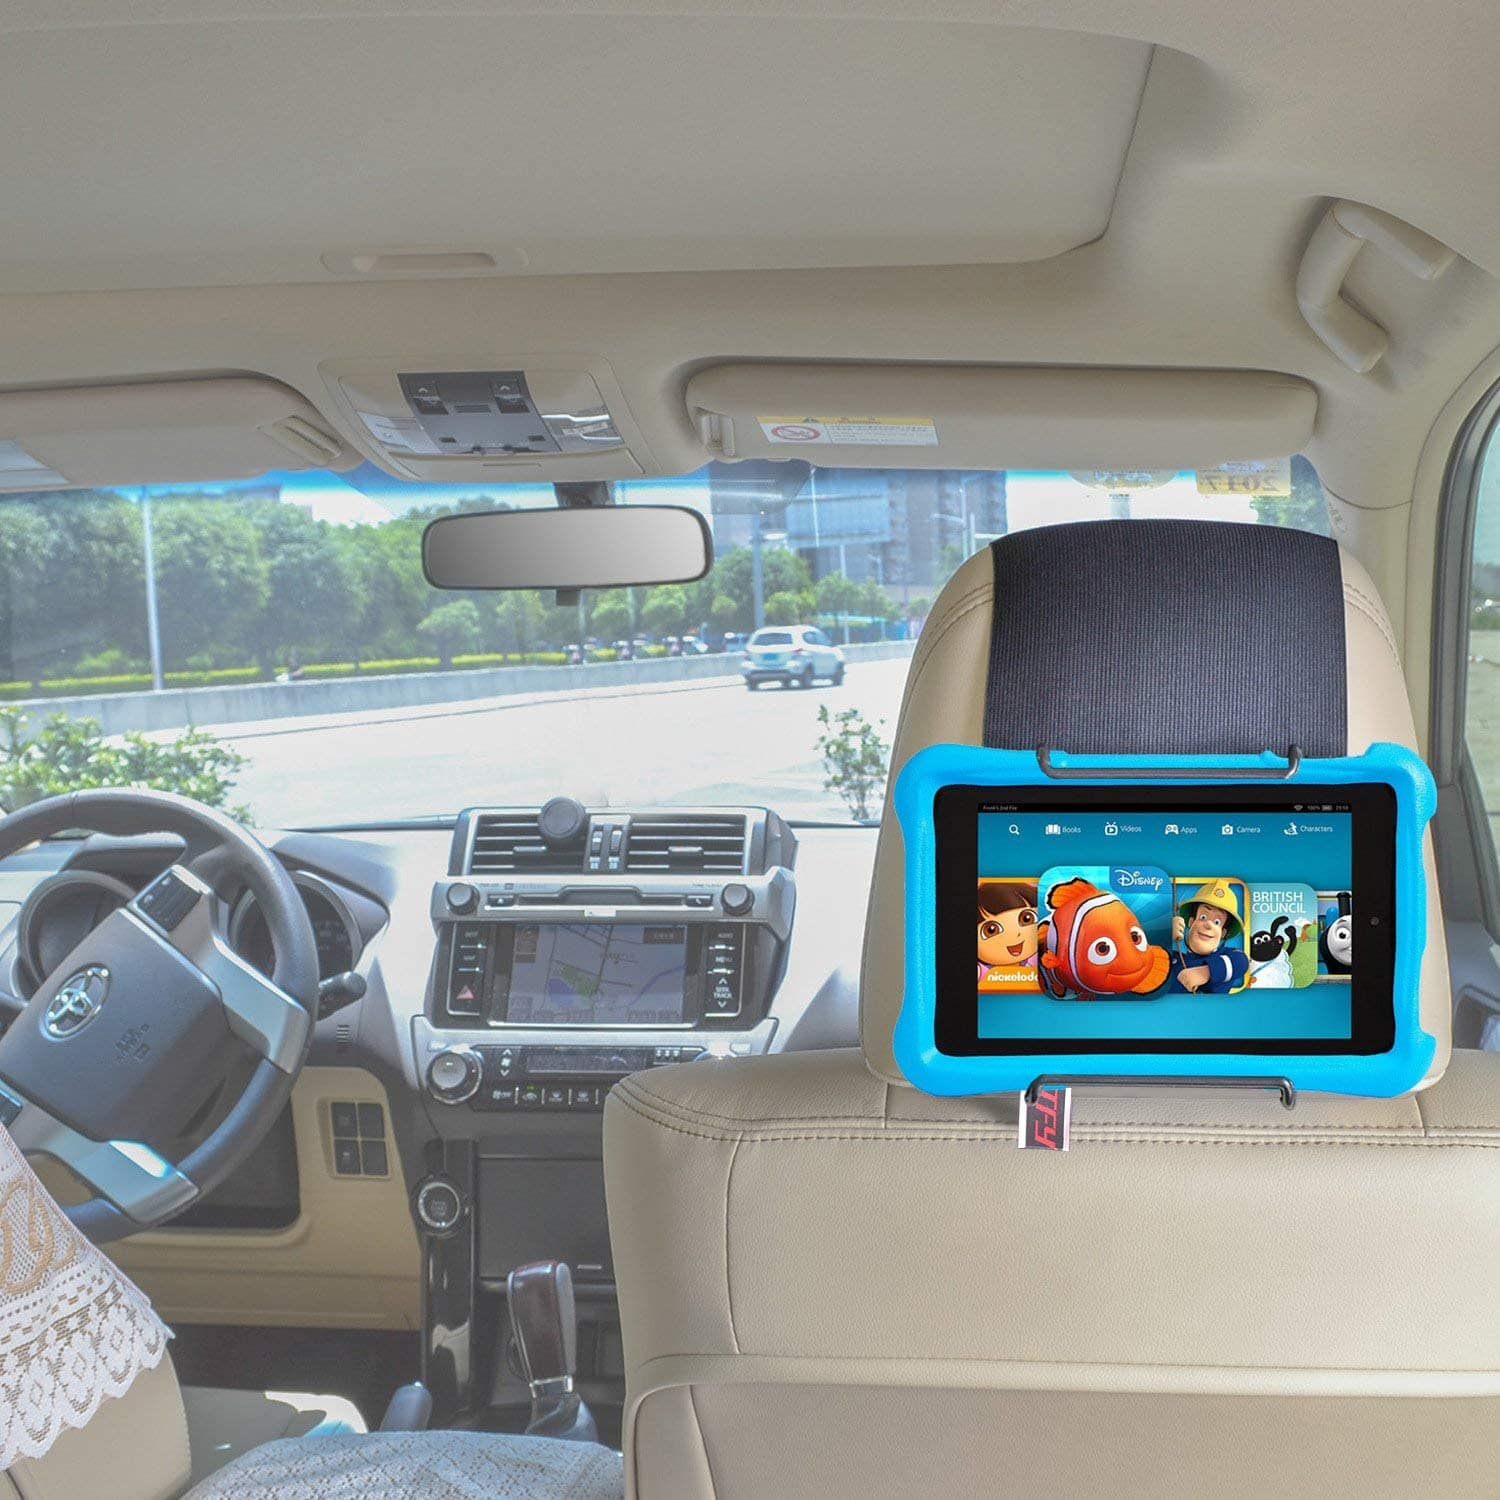 Car Headrest Mount for all Kindle Fire Models $9.90